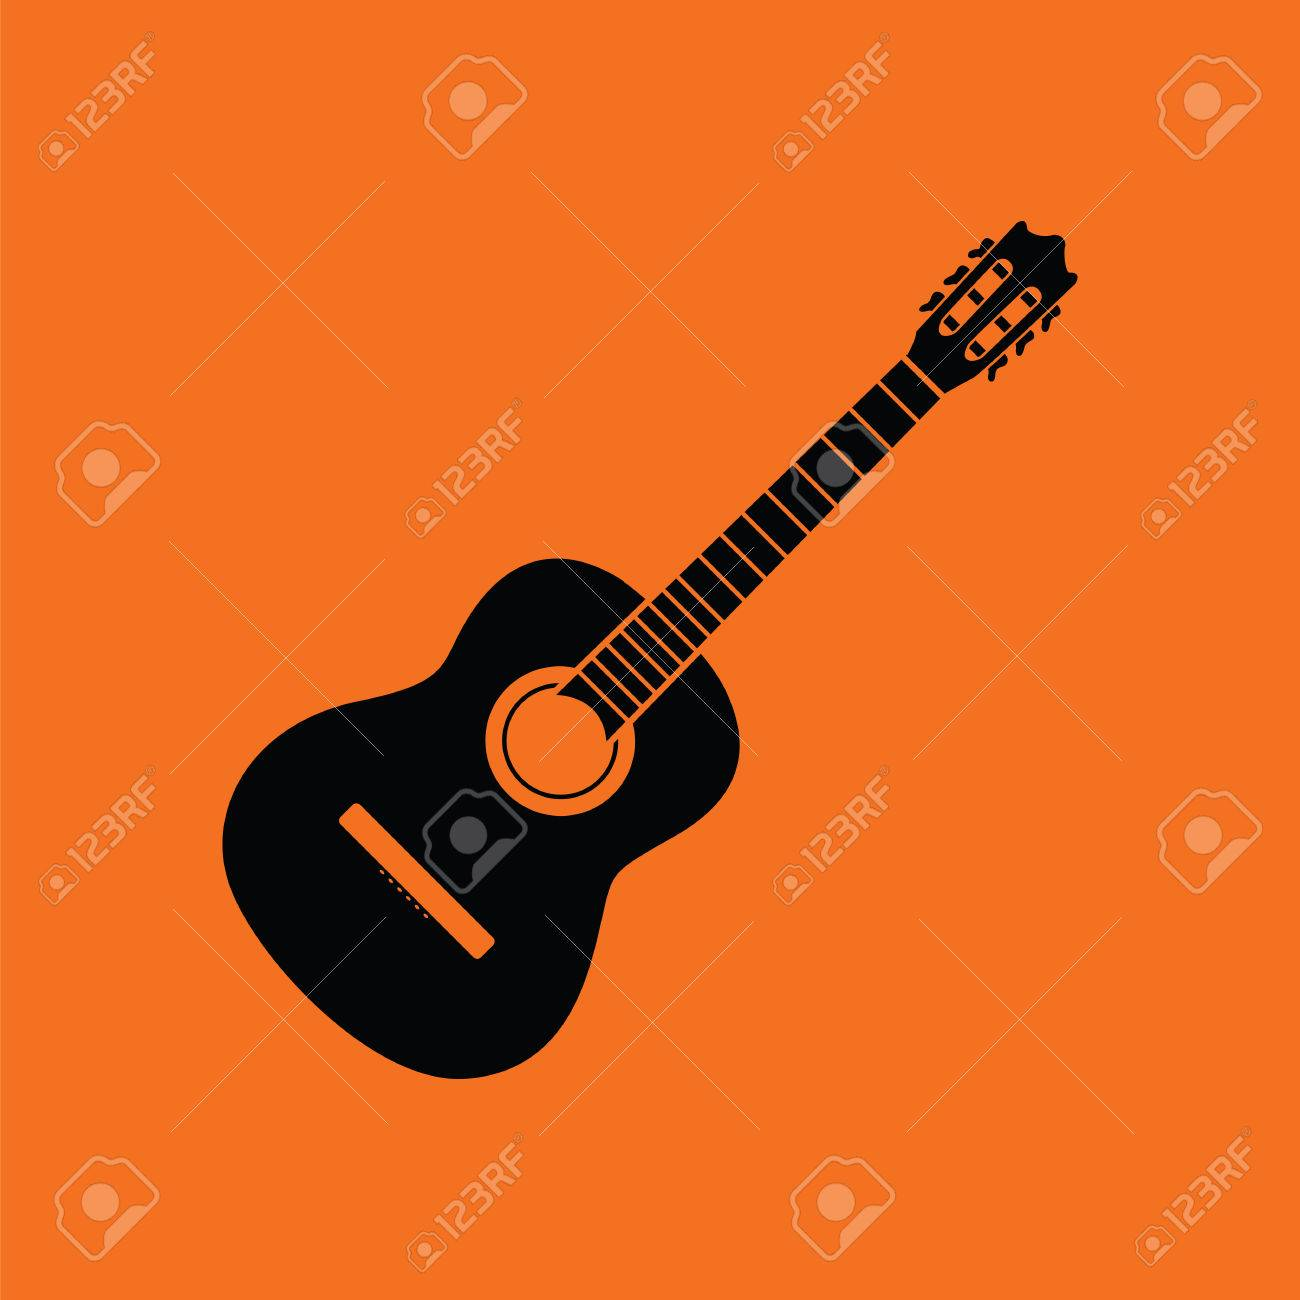 Acoustic Guitar Icon Orange Background With Black Vector